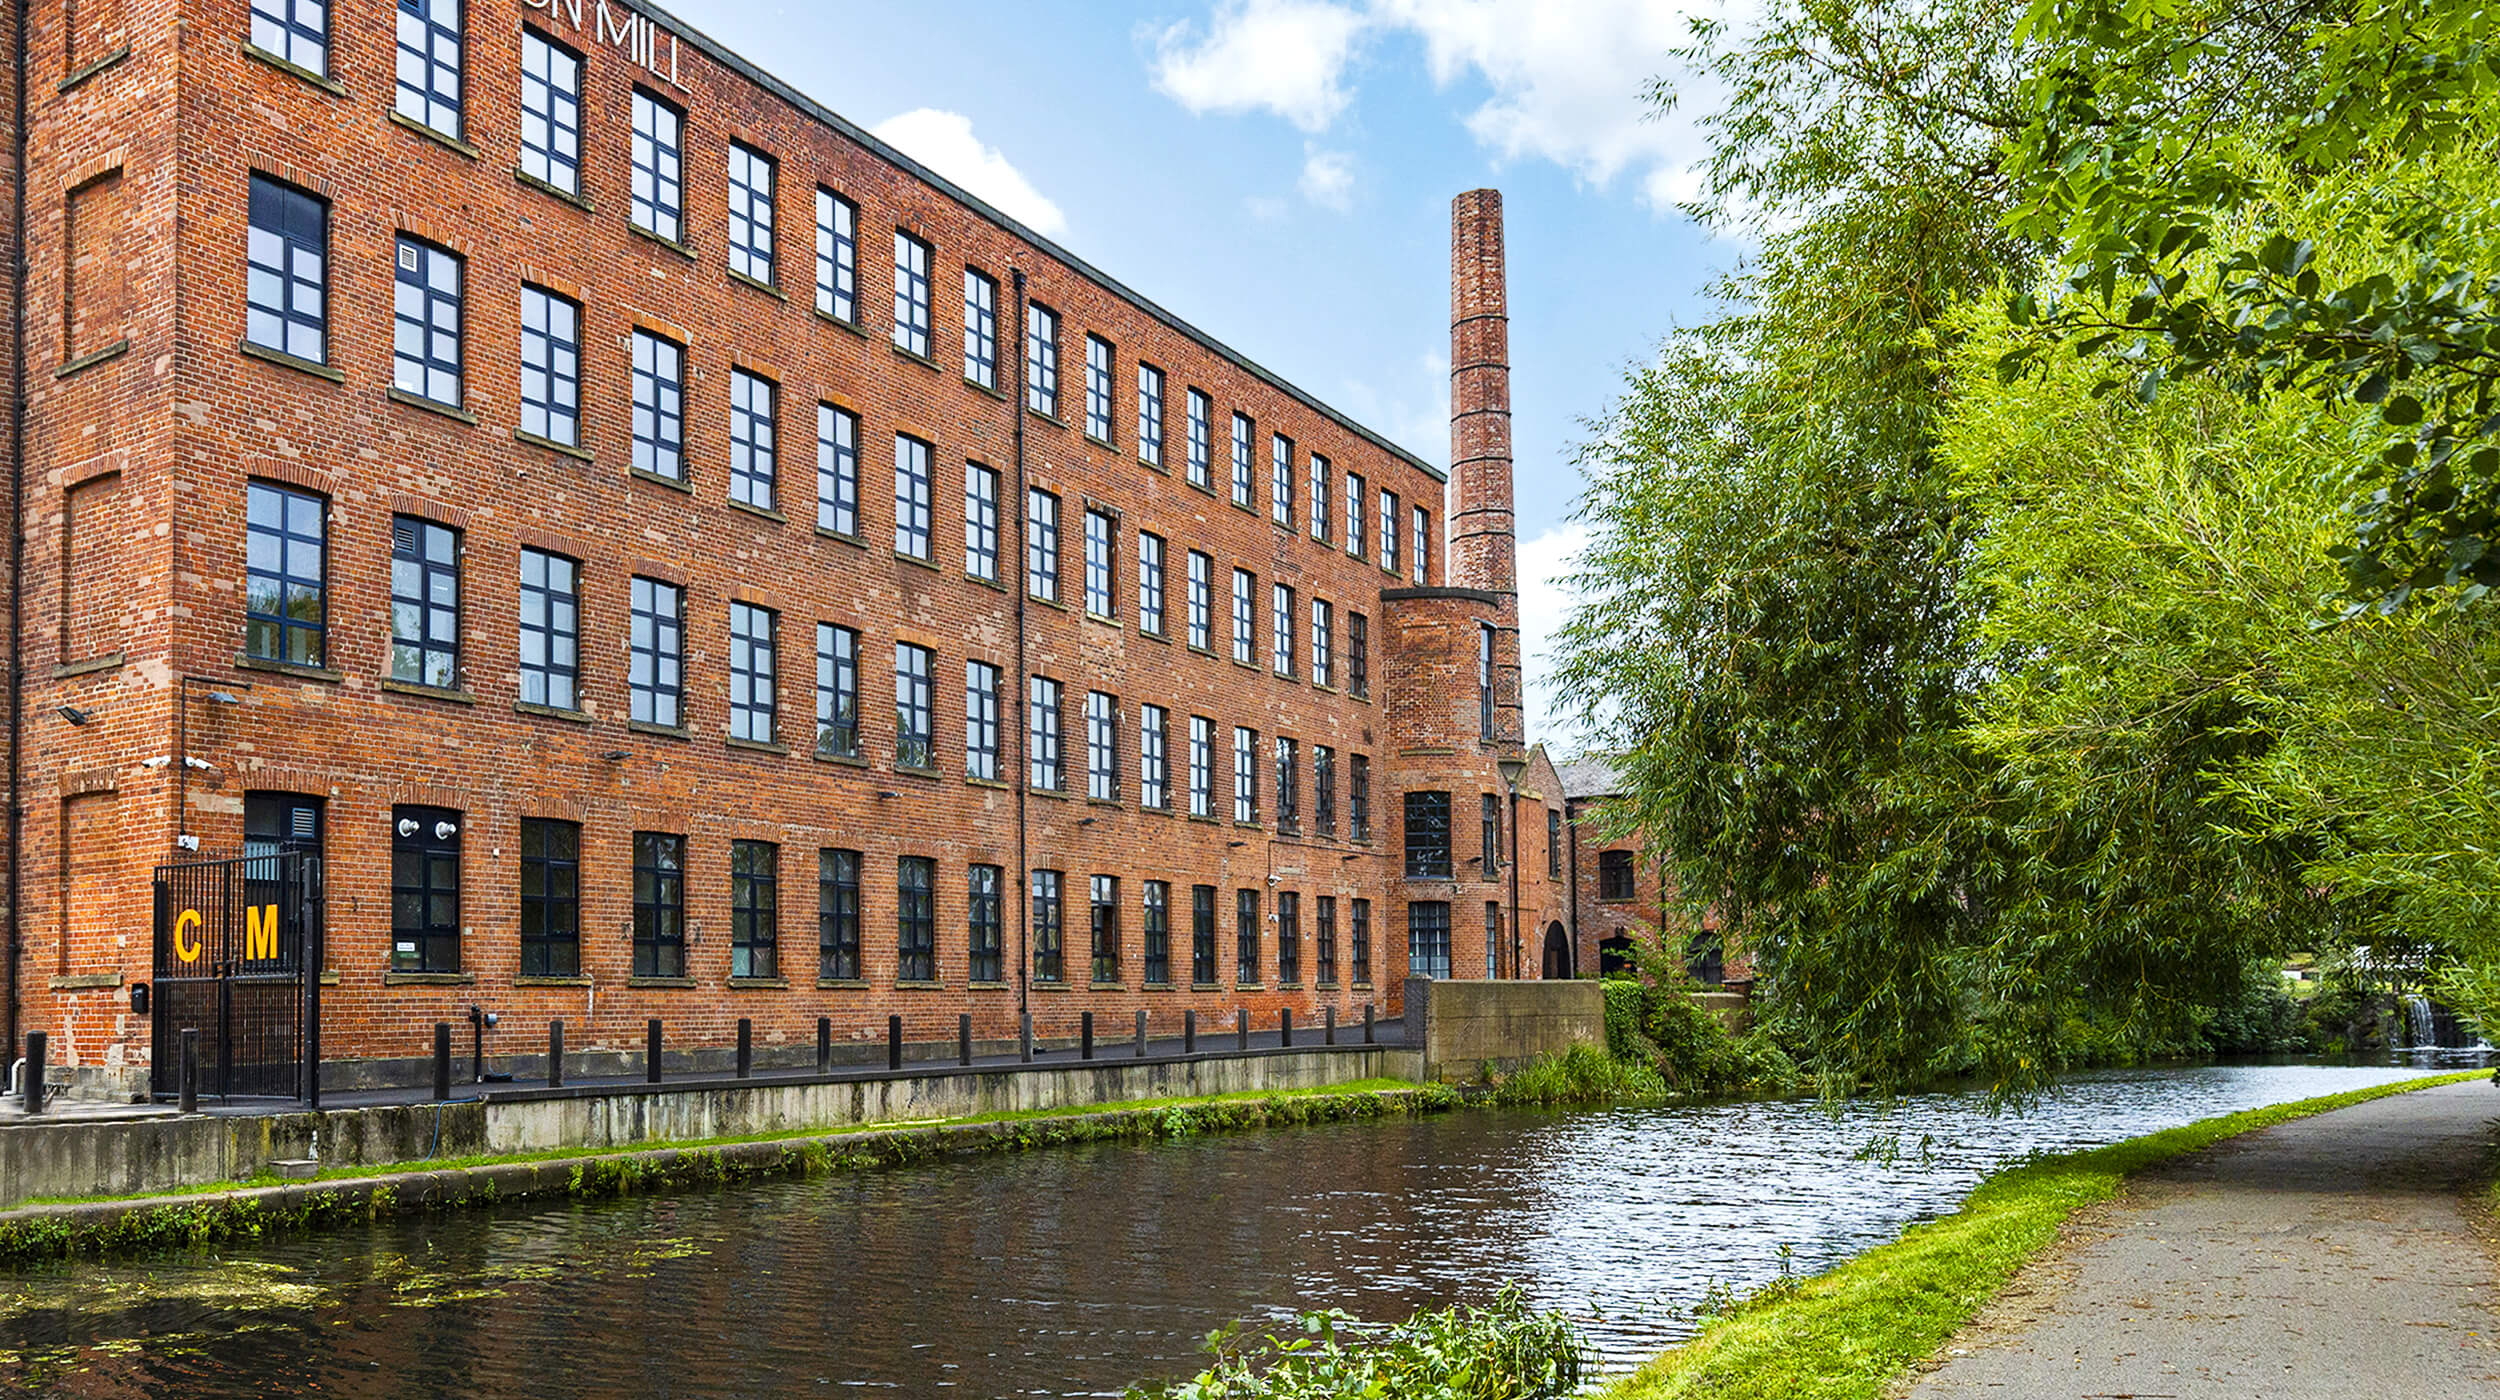 Canal side view of Castleton Mill on the Leeds Liverpool canal